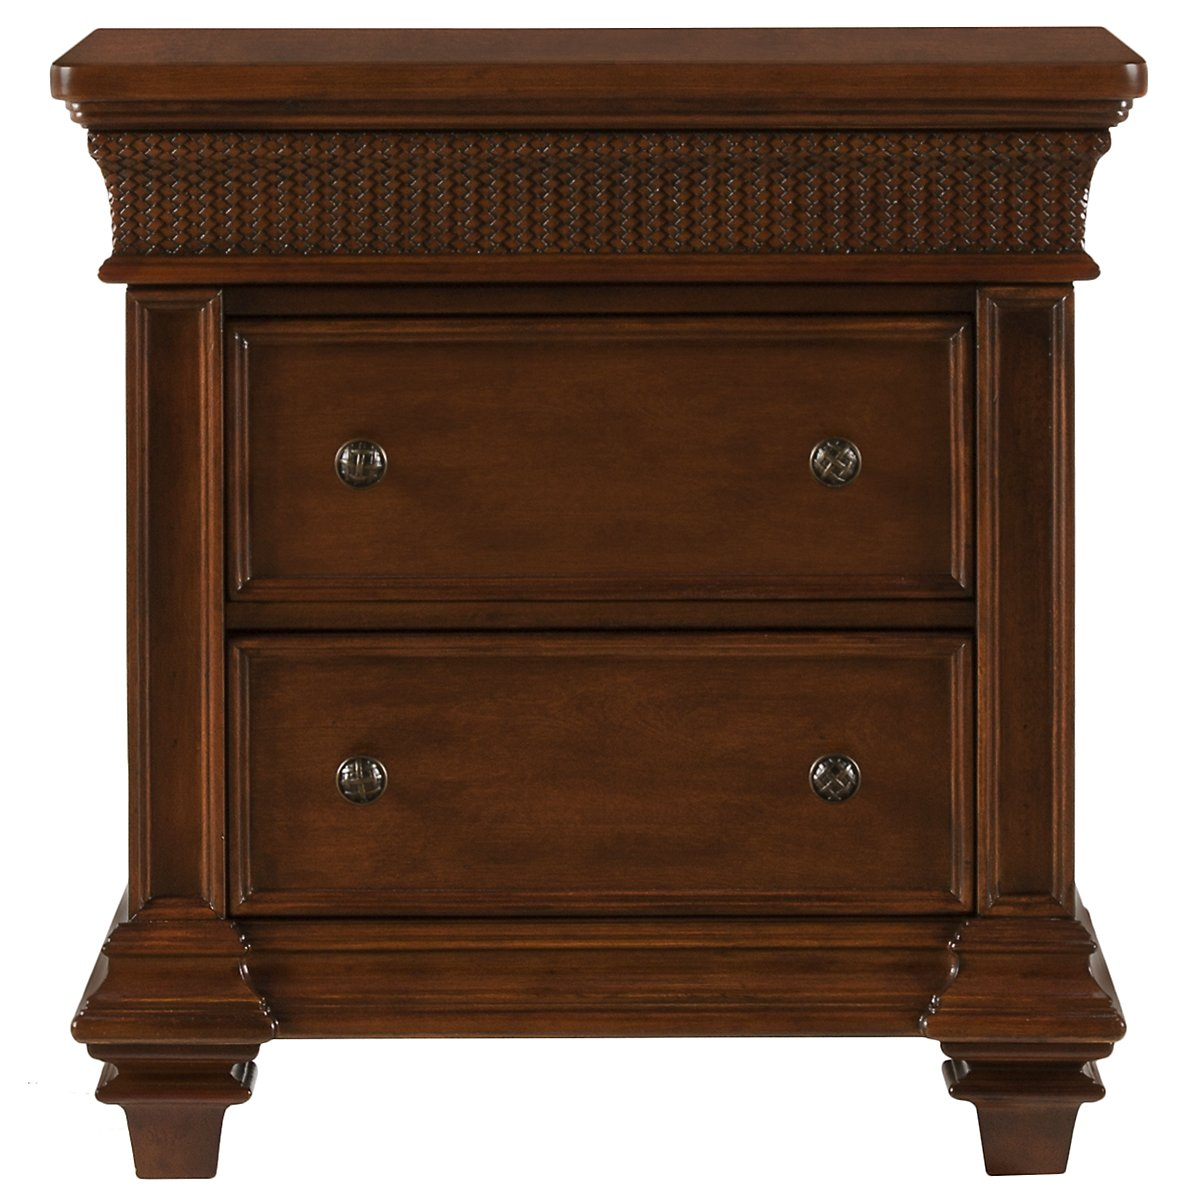 city furniture antigua mid tone nightstand. Black Bedroom Furniture Sets. Home Design Ideas